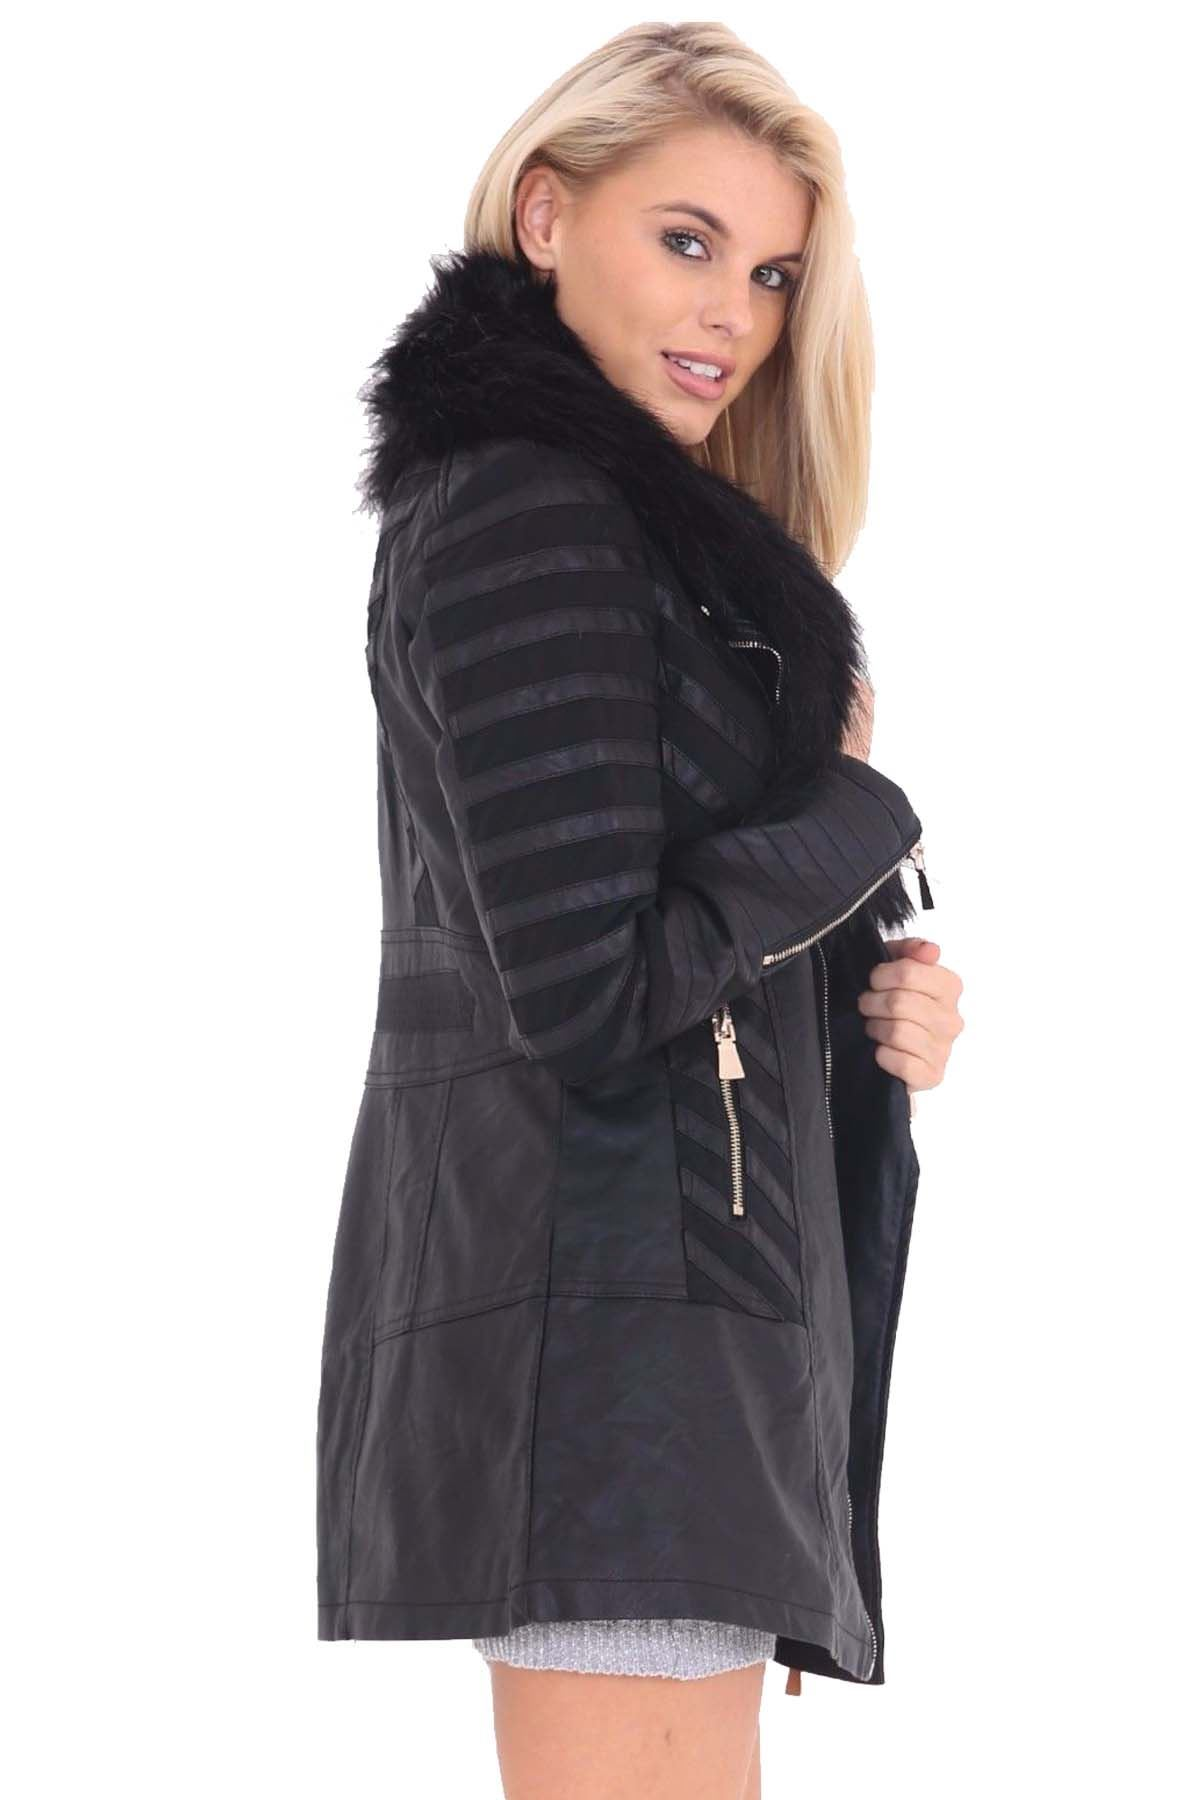 womens long stripe mesh insert pvc leather faux fur collar pu jacket coat ebay. Black Bedroom Furniture Sets. Home Design Ideas